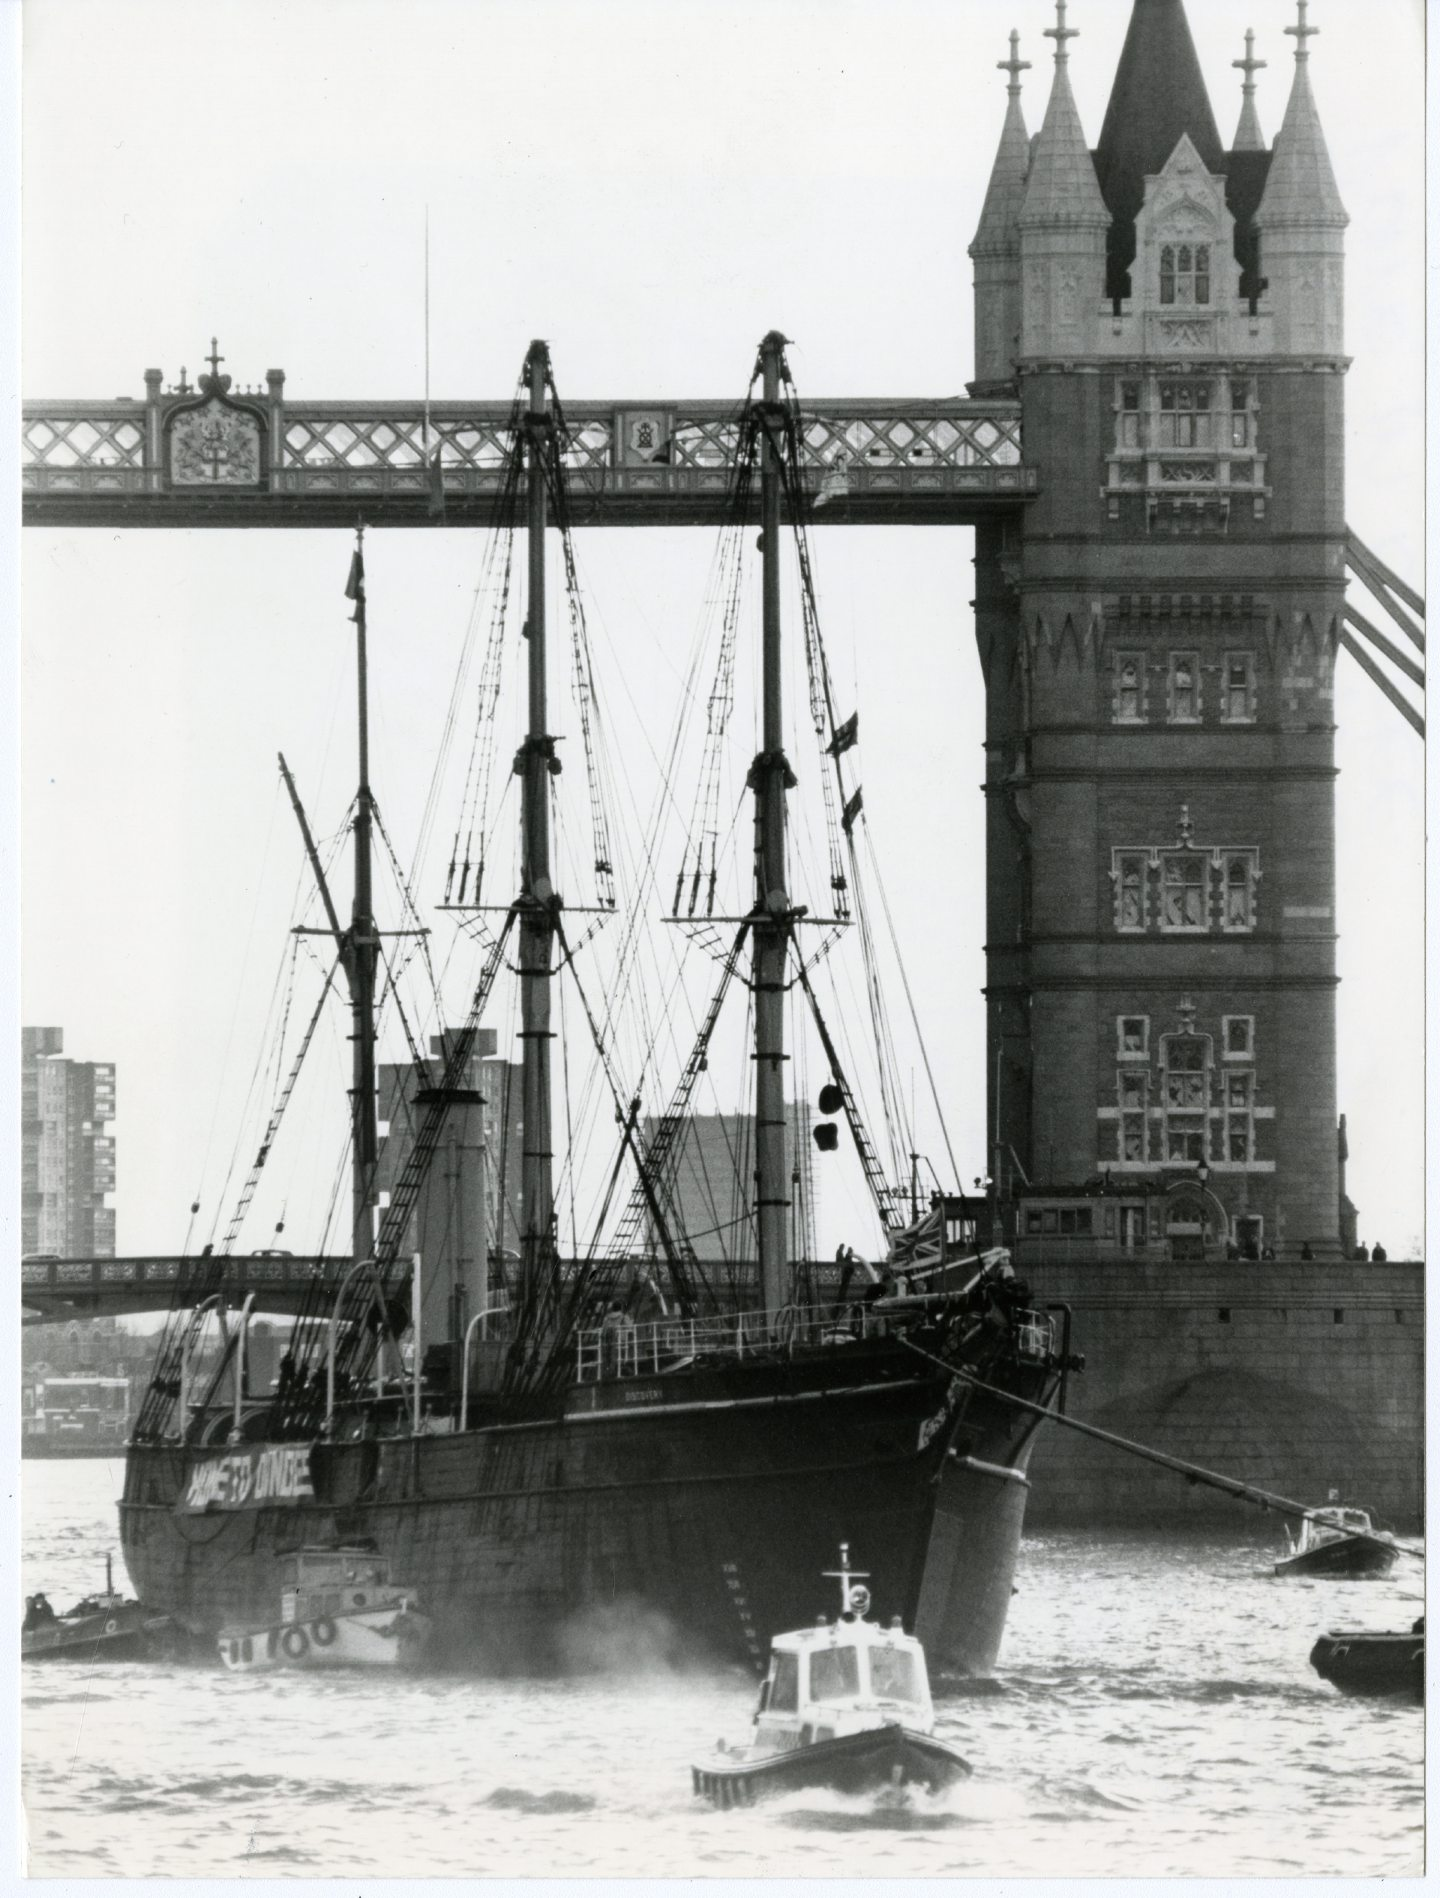 RRS Discovery passing Tower Bridge on its return journey to Dundee in 1986.